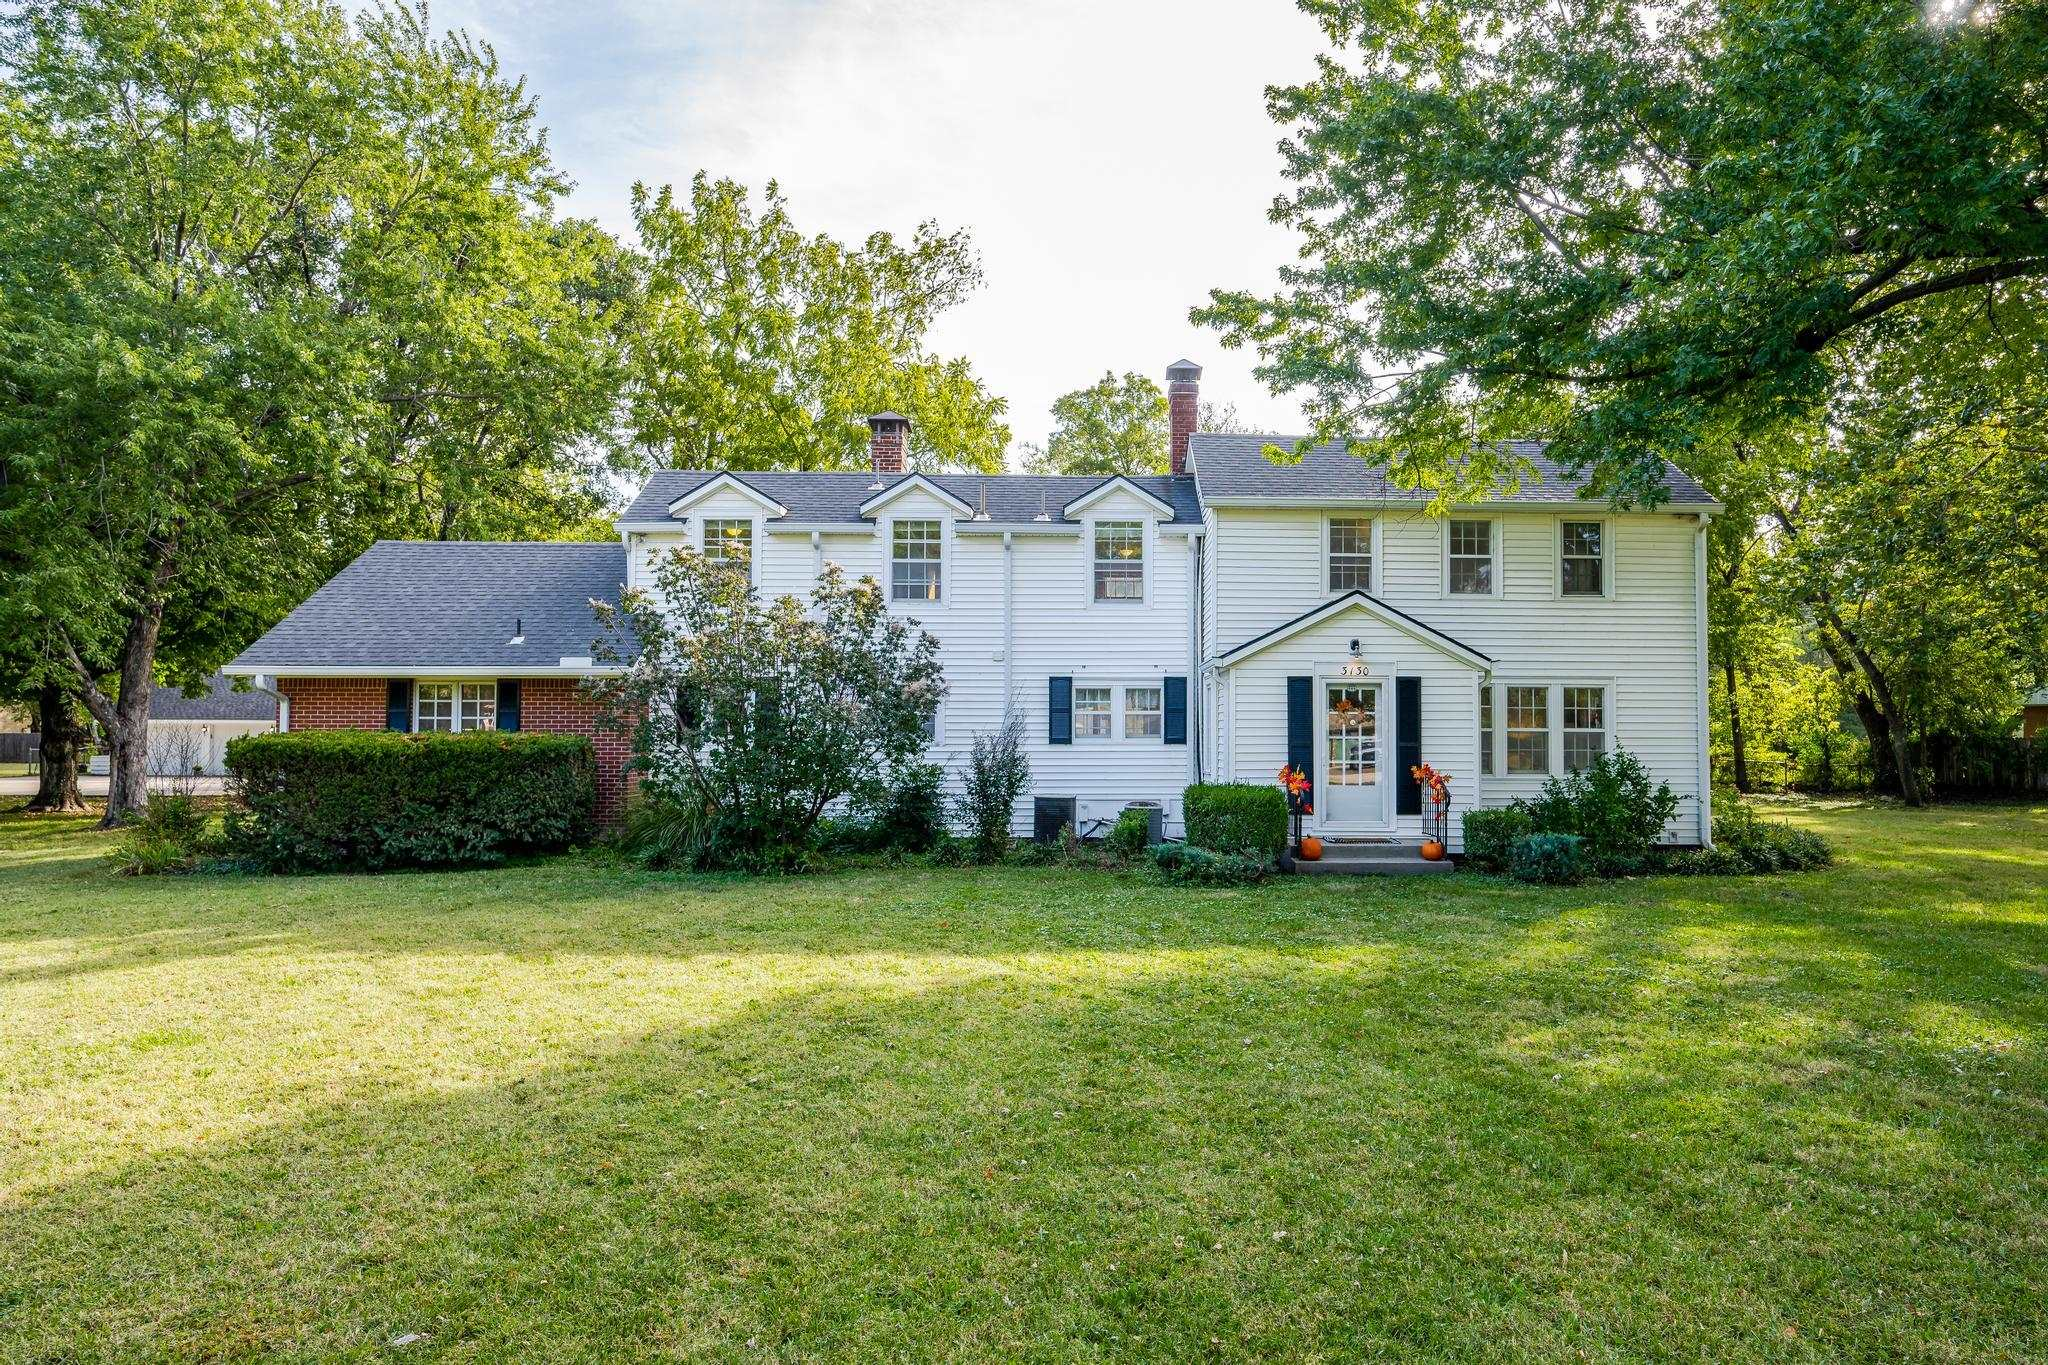 YOU'VE FOUND YOUR DREAM PROPERTY!!!  Welcome home to your impressive 4 bed, 2 bath, 7+ car garage th